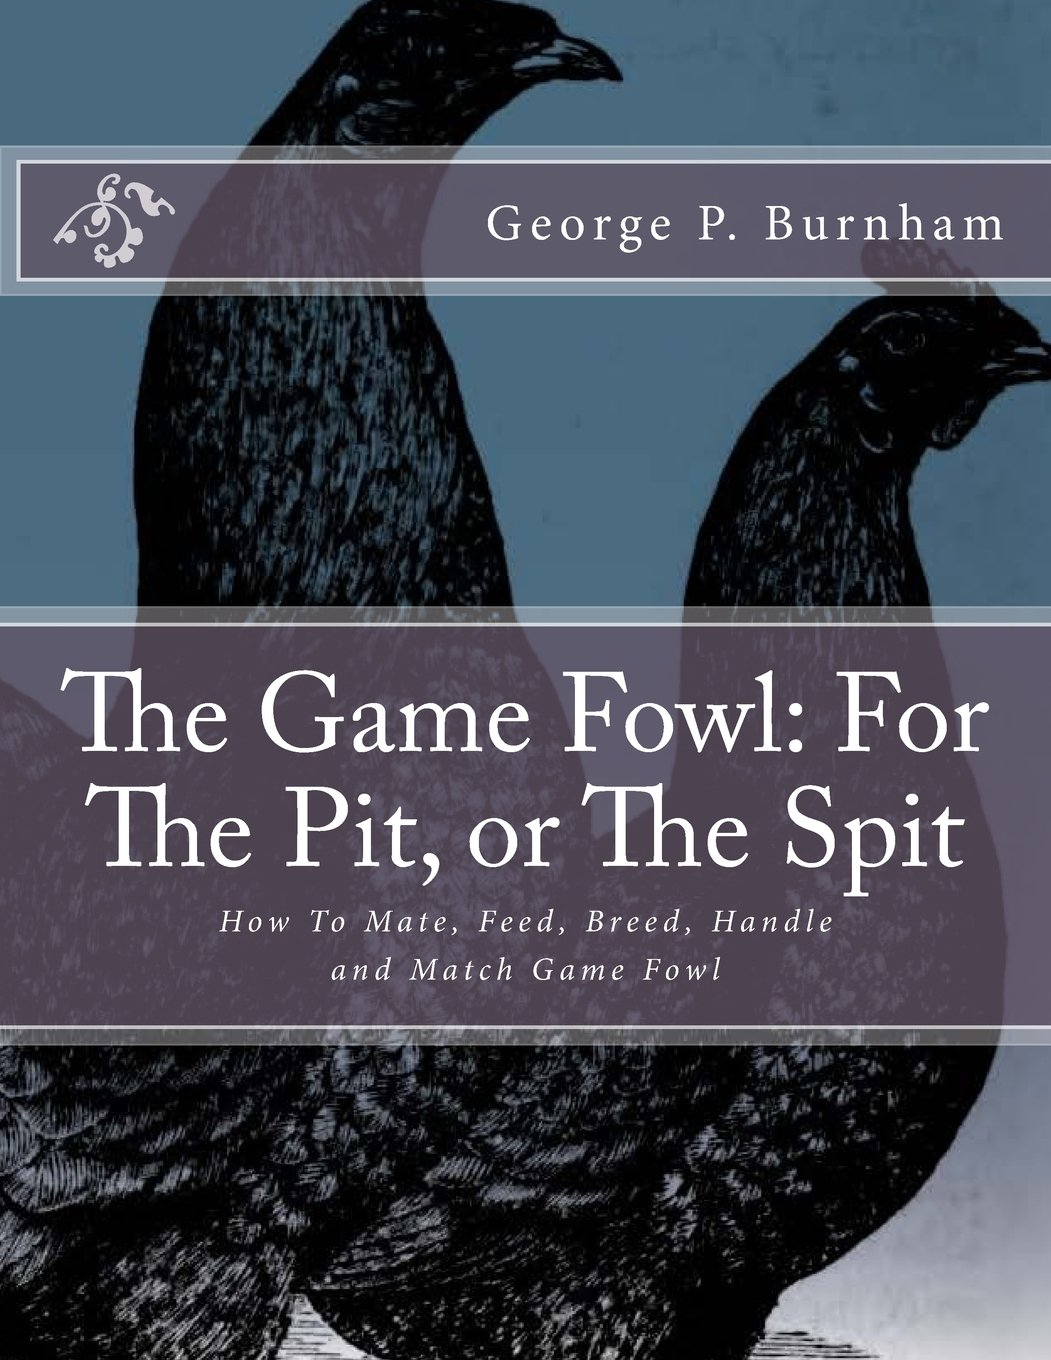 The Game Fowl: For The Pit, or The Spit: How To Mate, Feed, Breed, Handle and Match Game Fowl